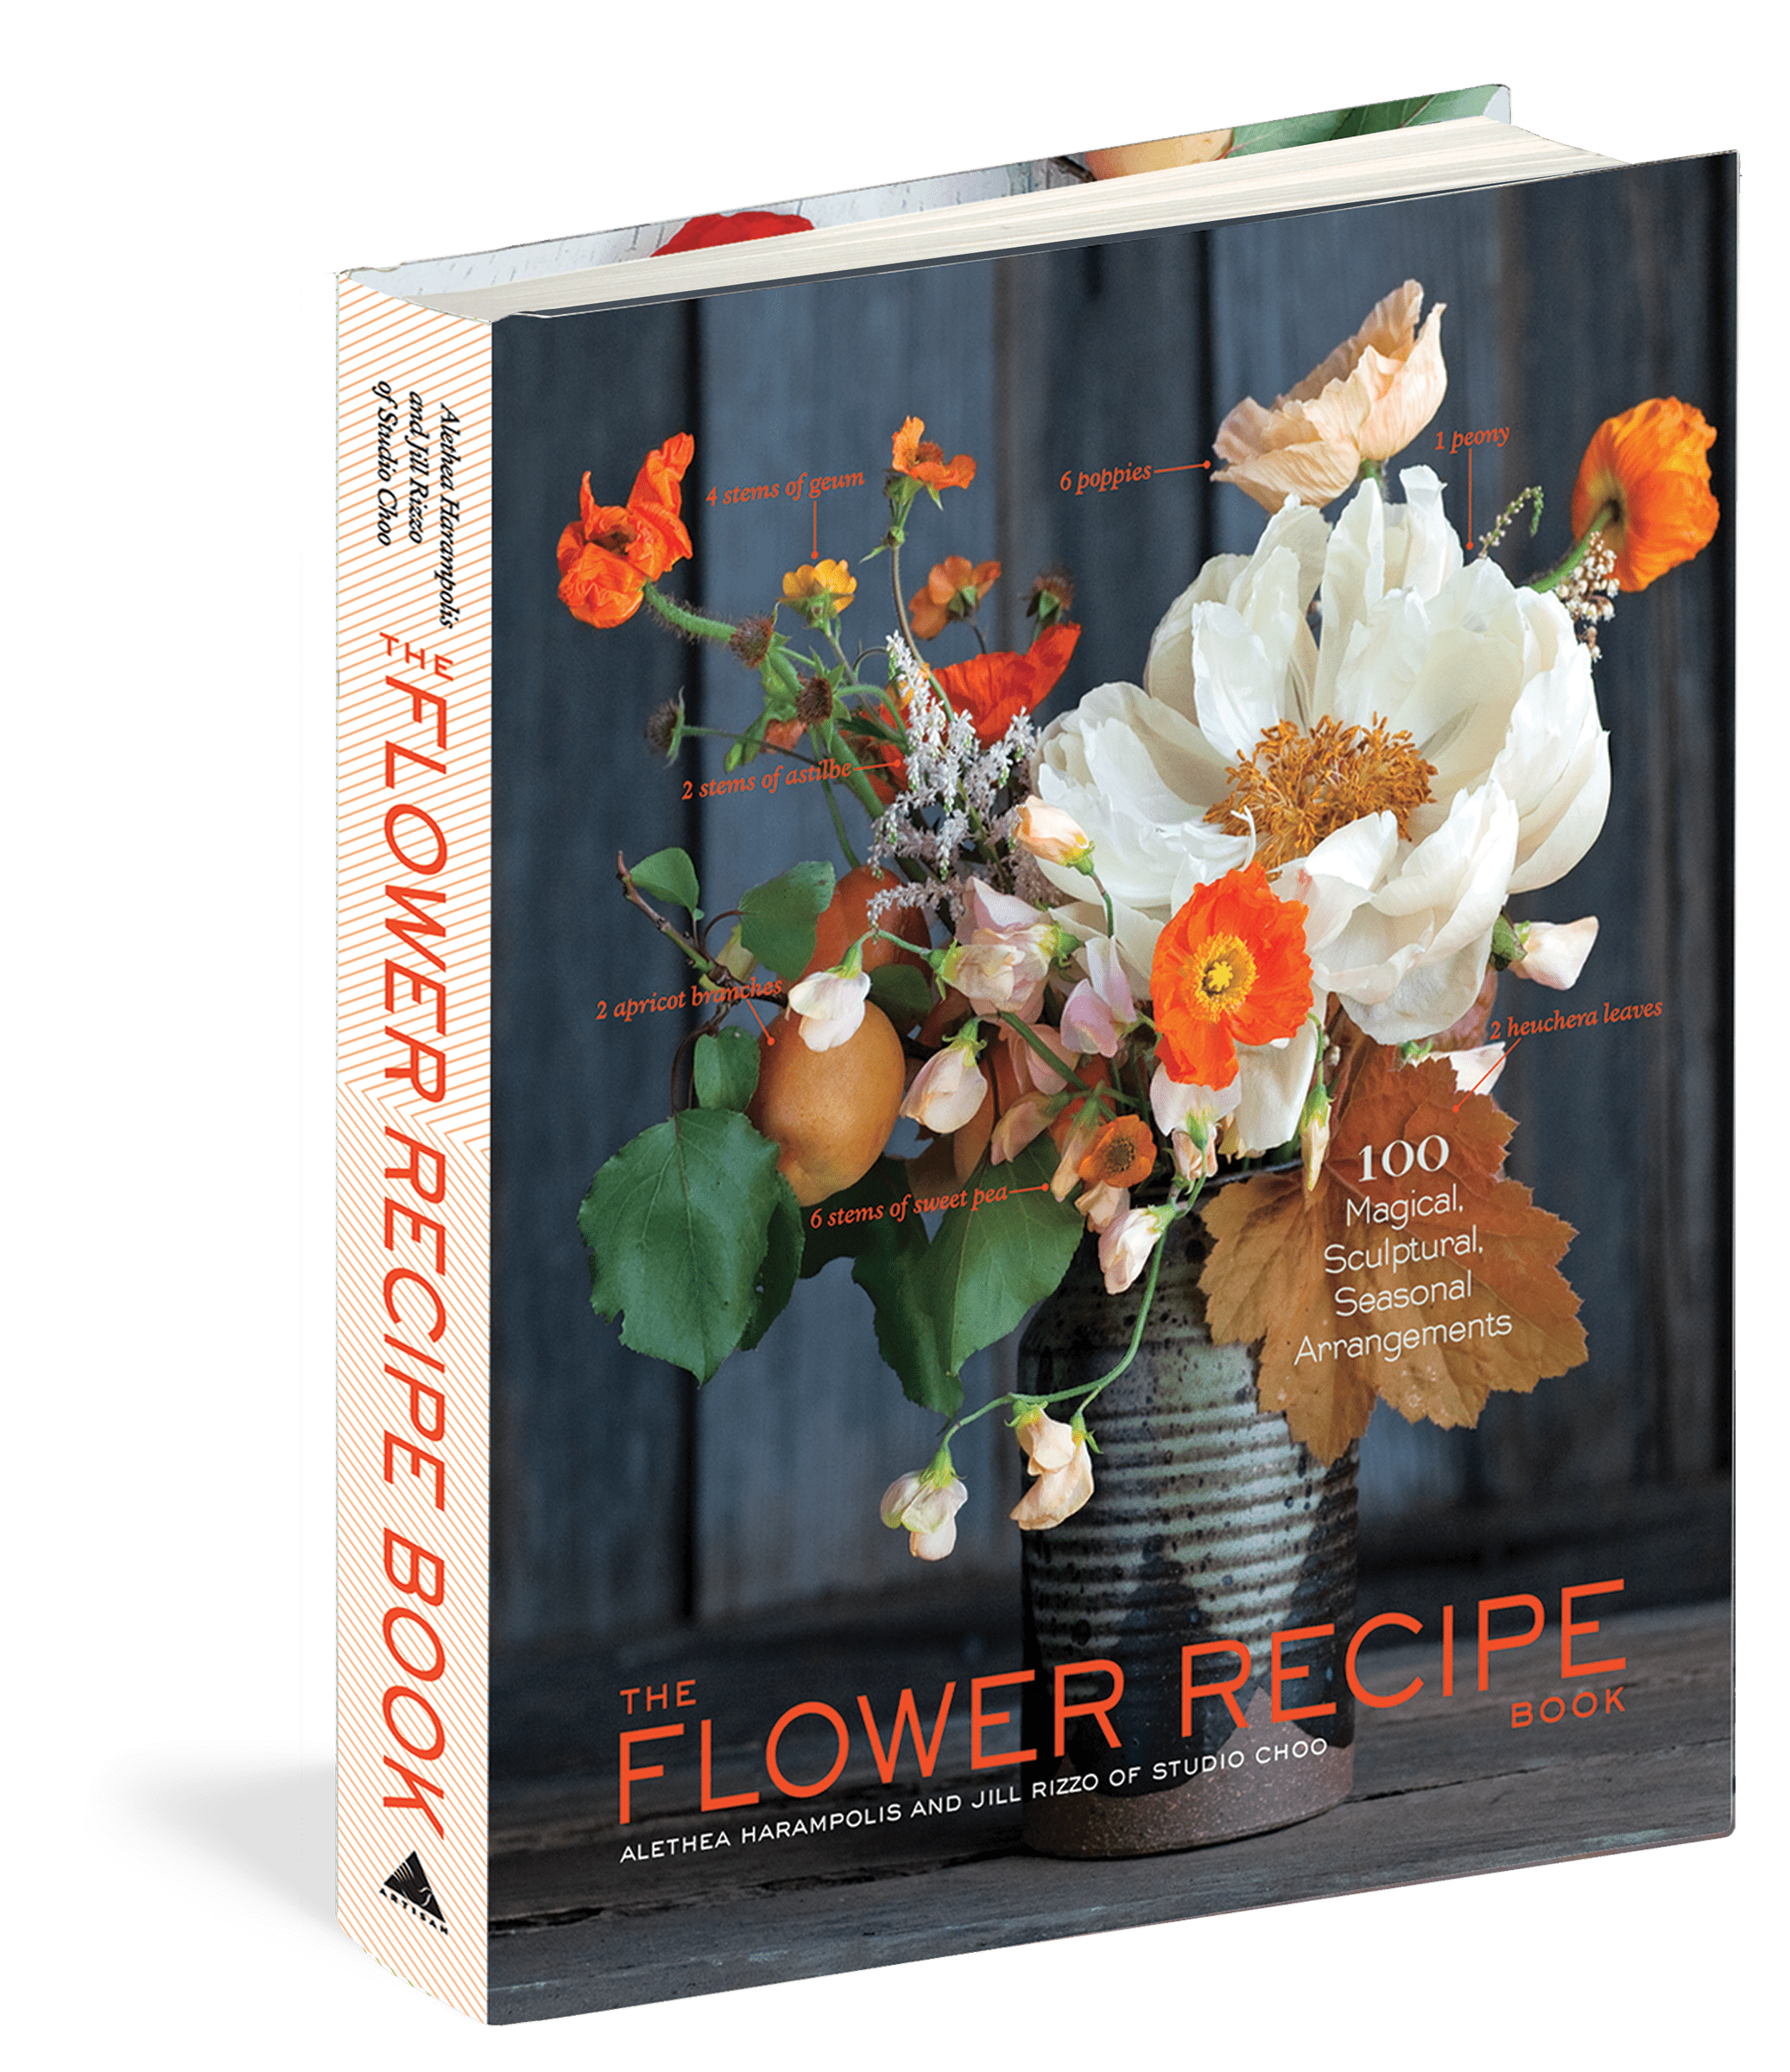 Flower Recipe Book by Alethea Harampolis & Jill Rizzo read study in the pursuit